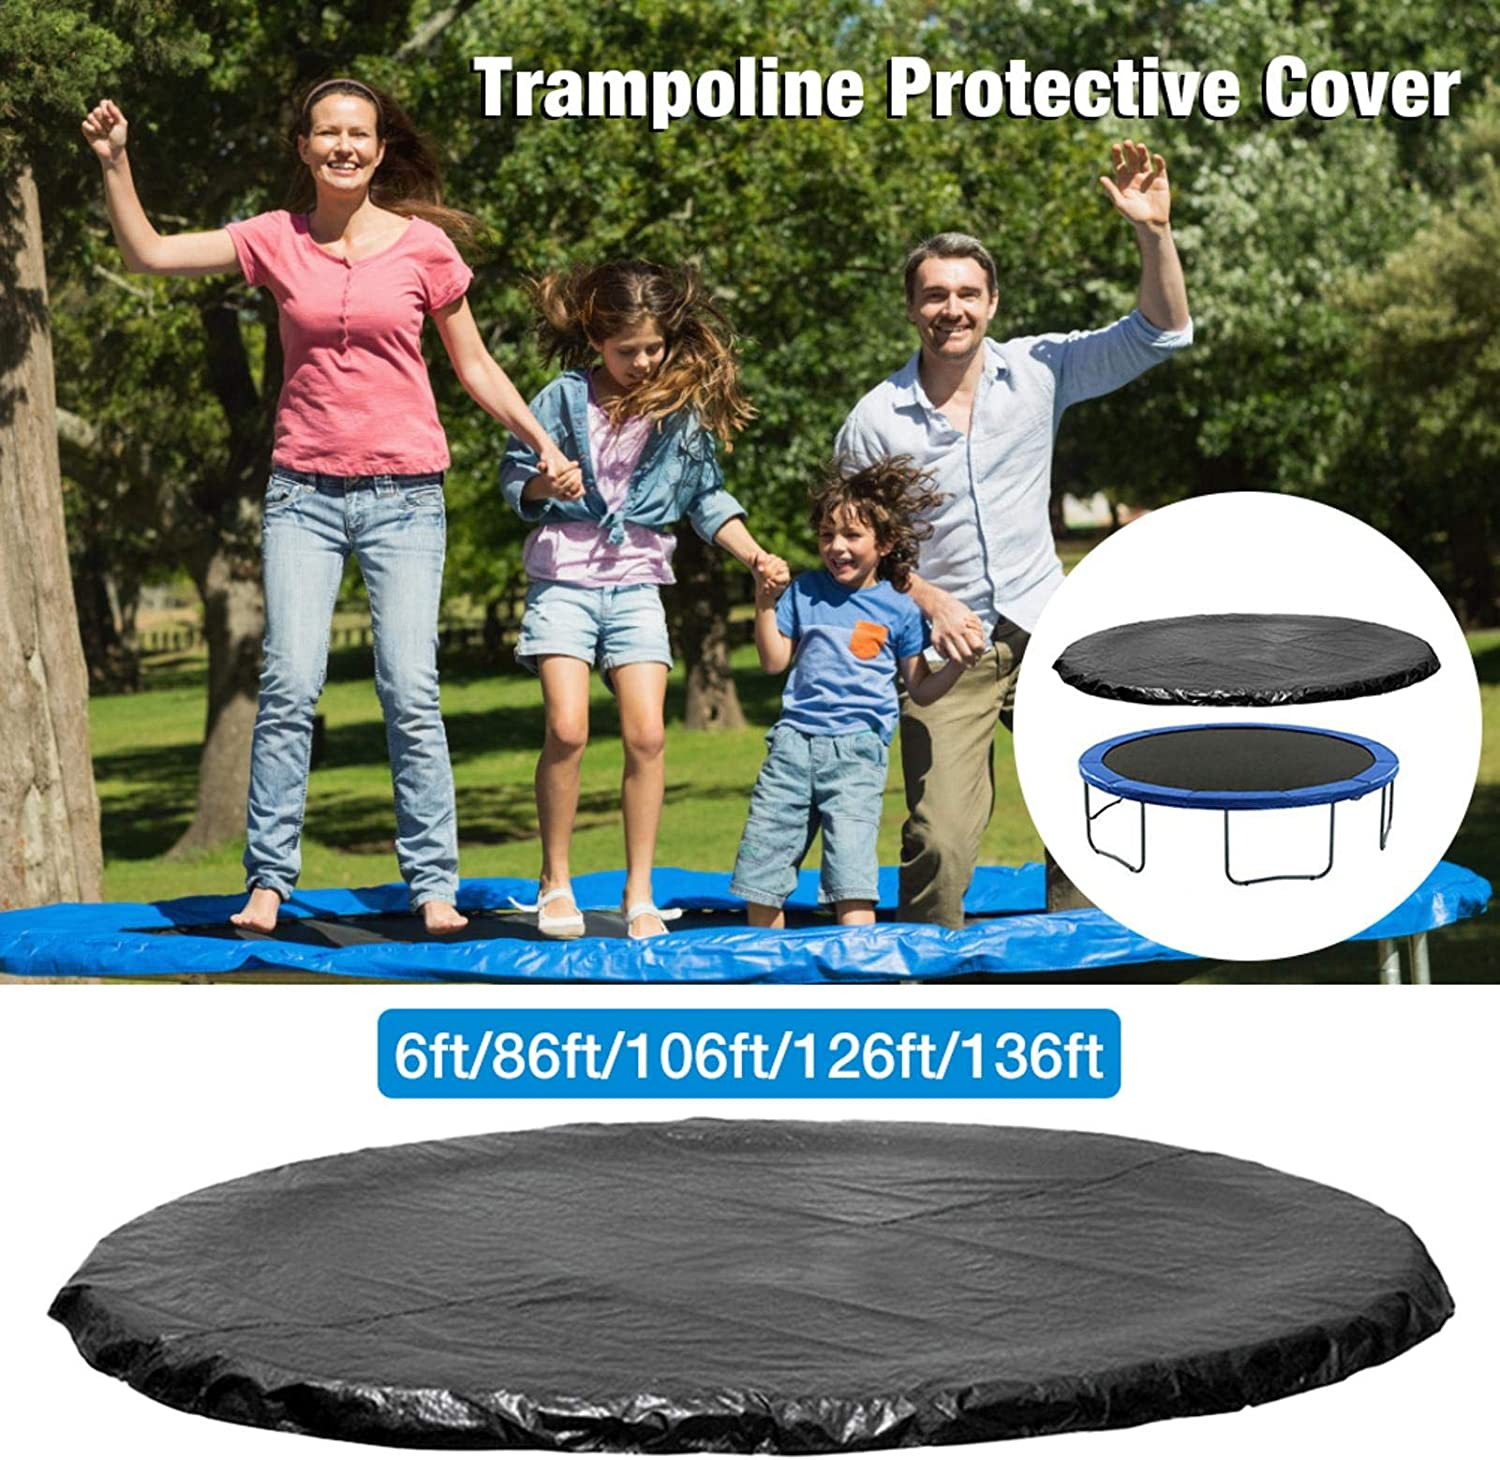 UV Resistant Thick Material Weather and Rain Protection Perfect Bounce Xianggu 6ft 8ft 10ft 12ft 13ft Trampoline Cover Trampoline Replacement Pro Jumping Mat